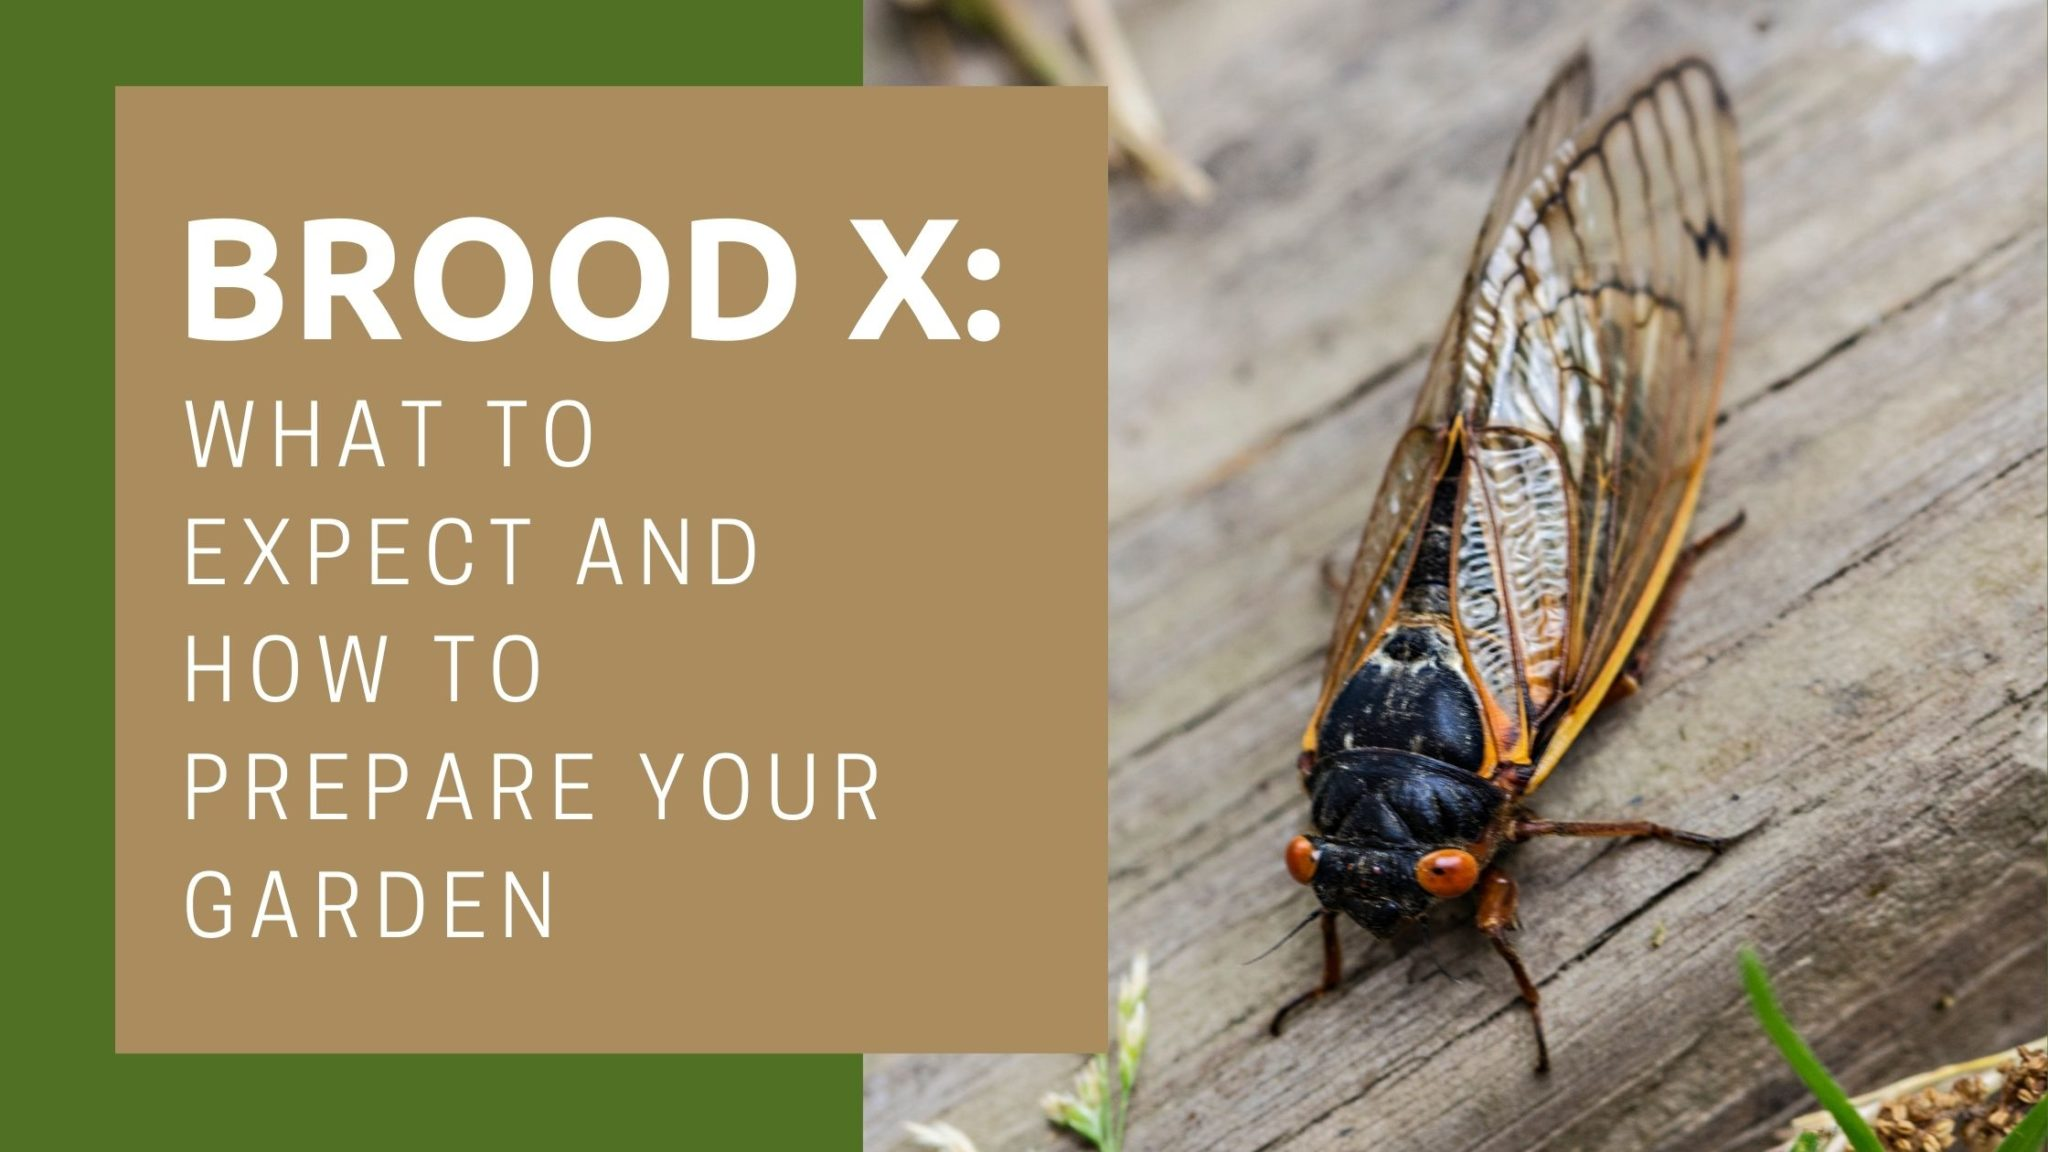 Brood X: What to Expect and How to Prepare Your Garden